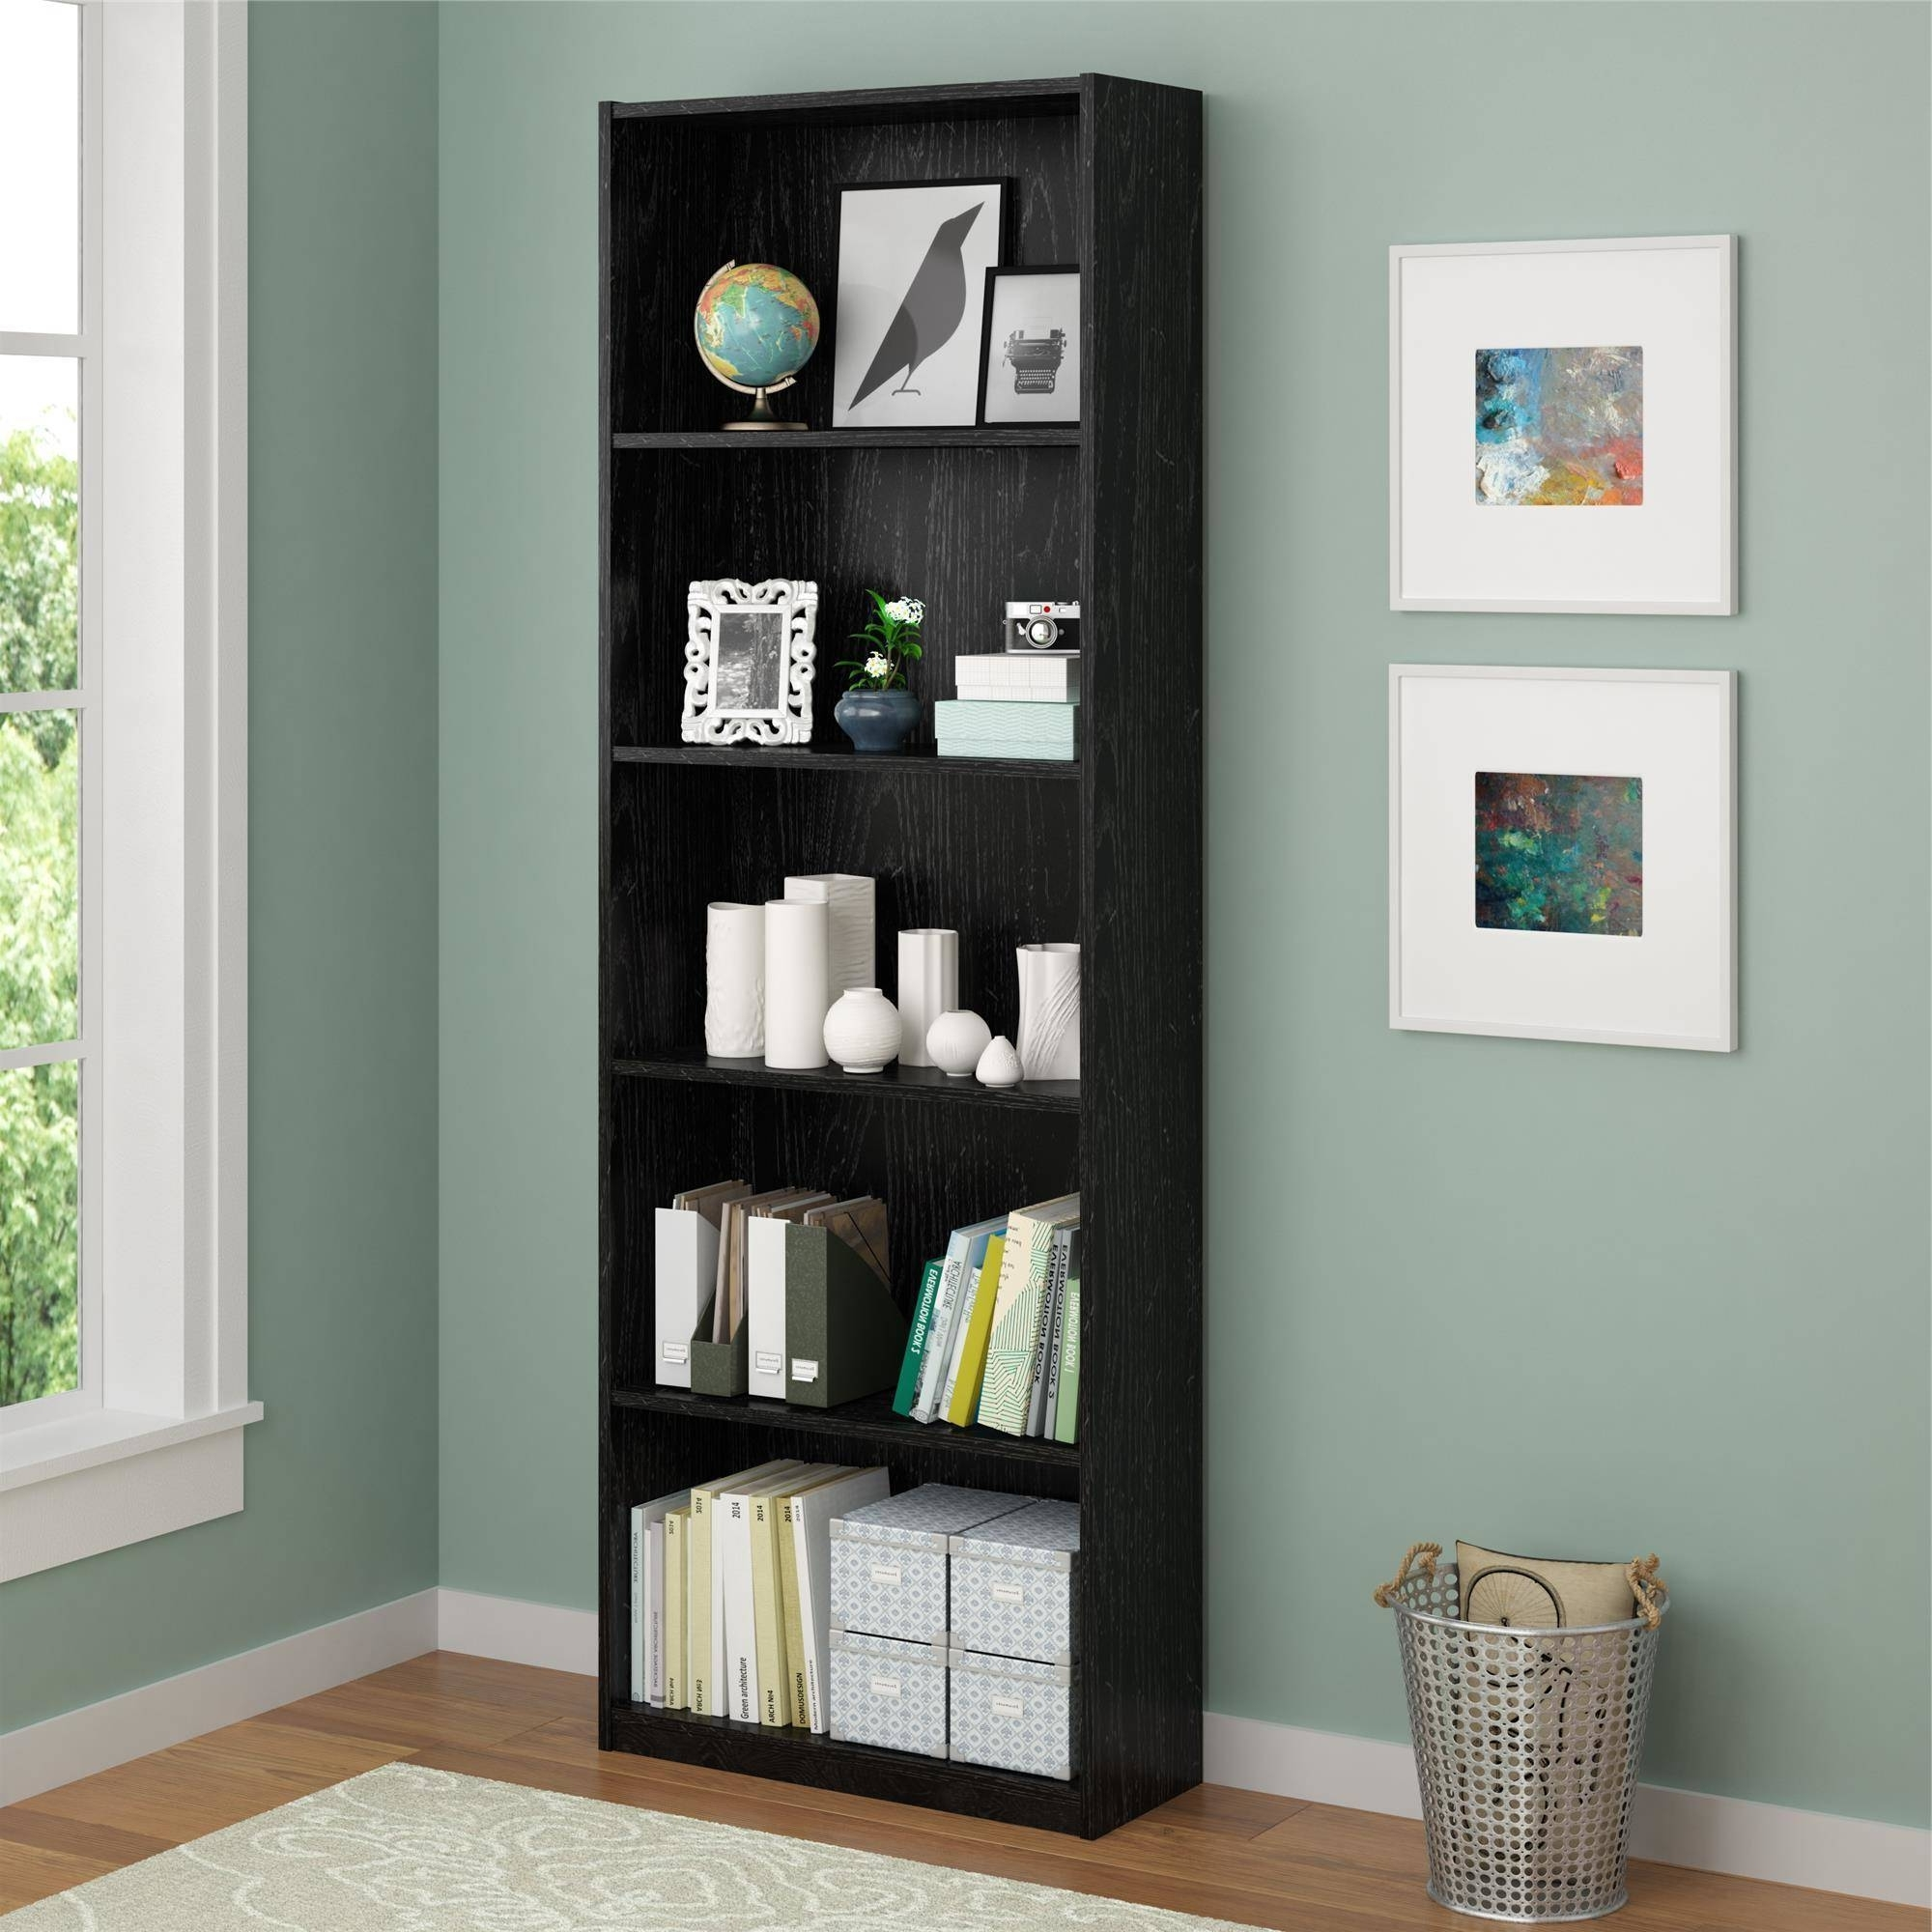 Ameriwood 5 Shelf Bookcases, Set Of 2 (mix And Match) – Walmart Within Latest Espresso Bookcases (Gallery 9 of 15)